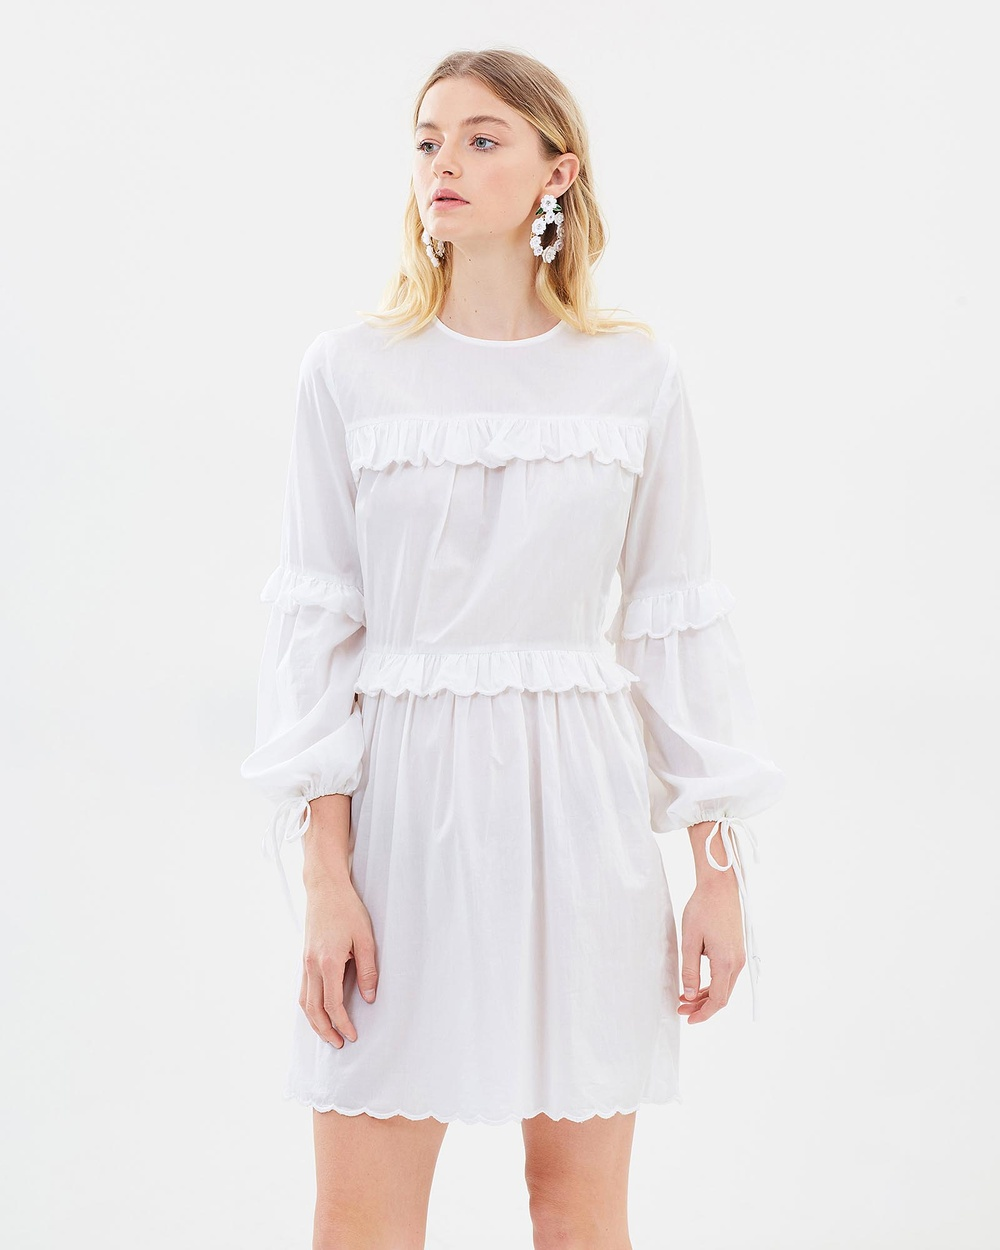 Morrison Adelaide Mini Dress Dresses White Adelaide Mini Dress